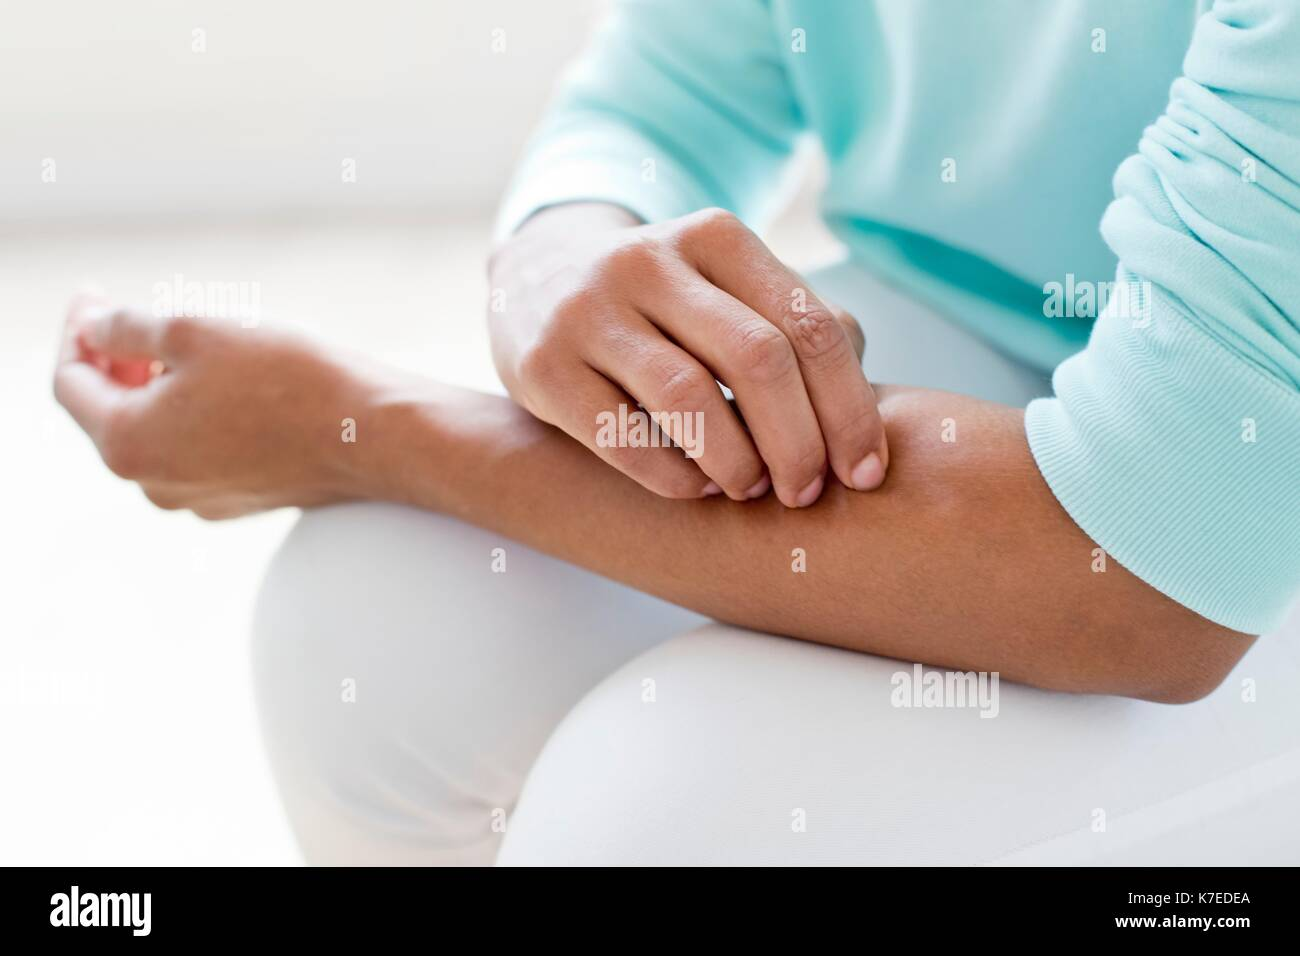 Woman scratching arm. - Stock Image